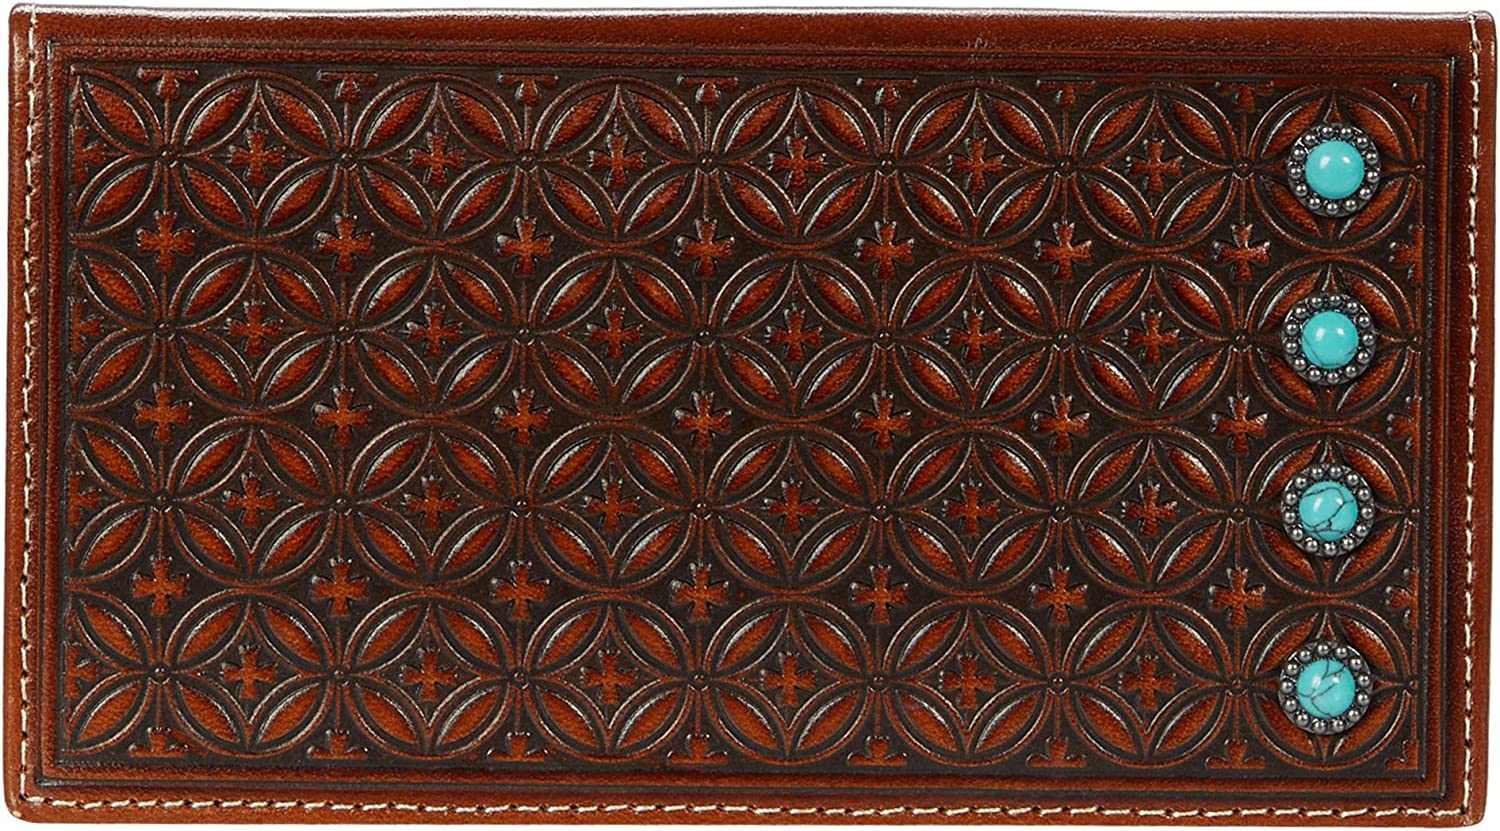 M&F Western Diamond Embossed Turquoise Stone Rodeo Wallet